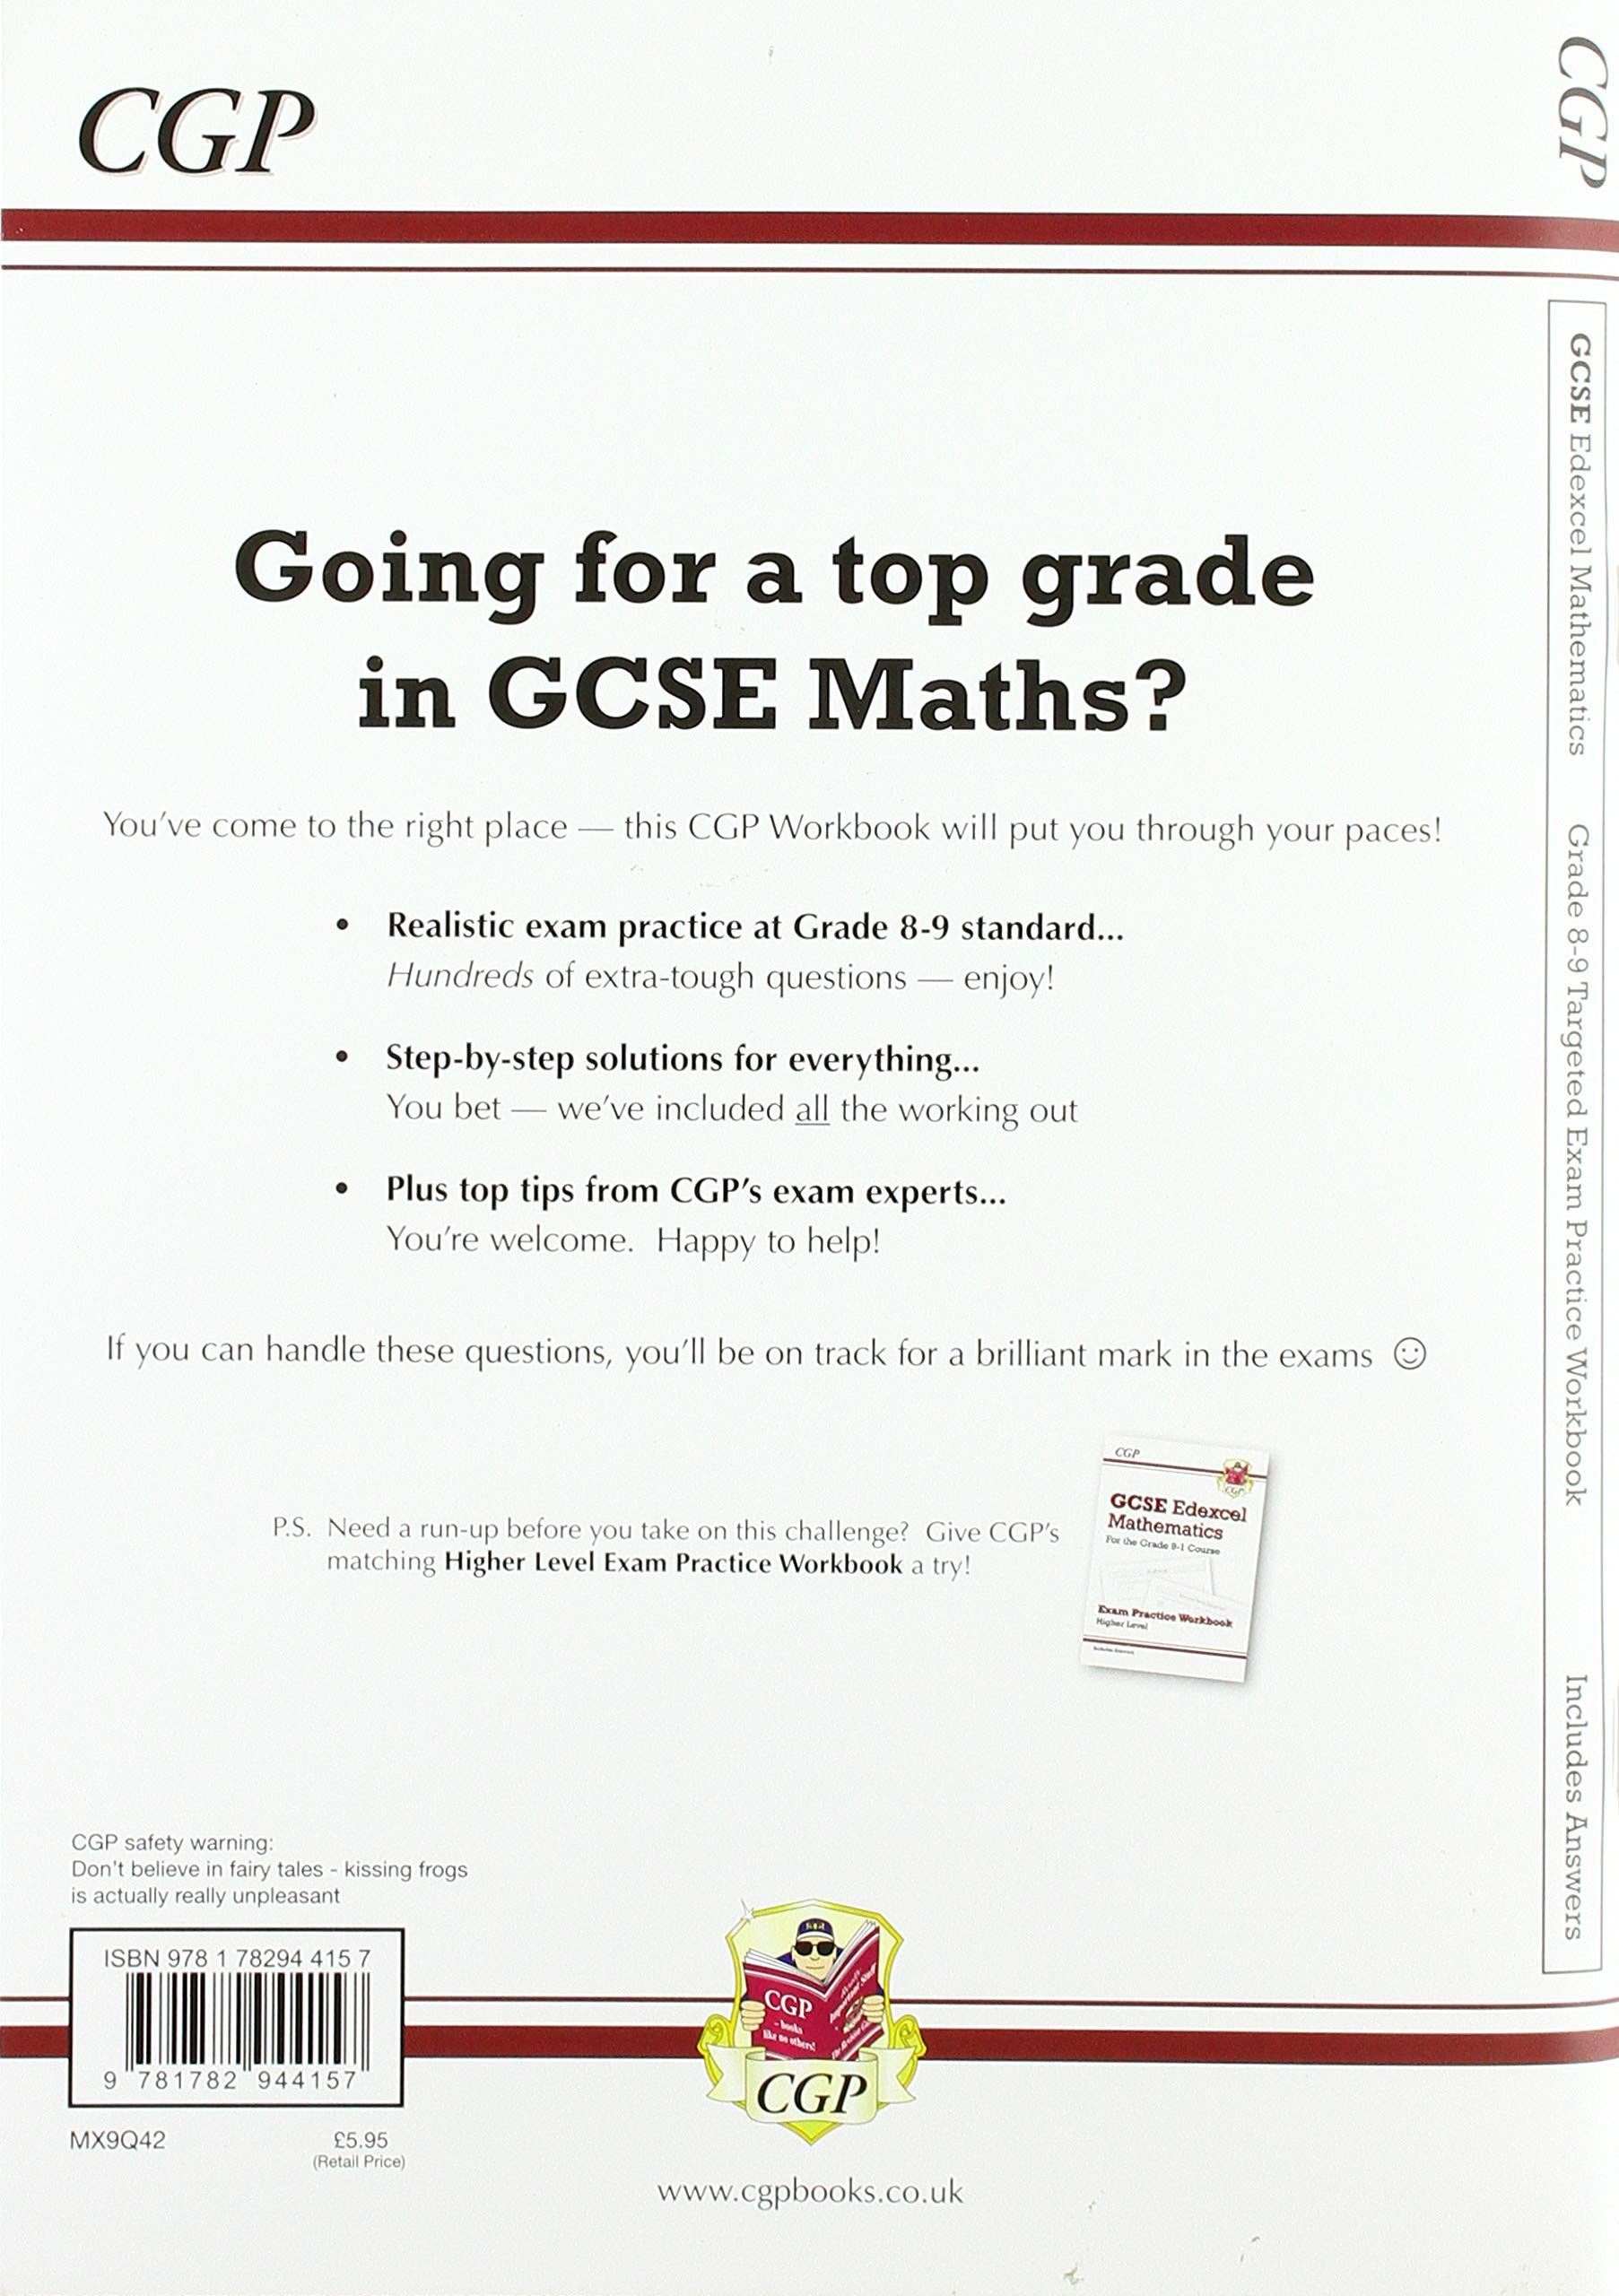 GCSE Maths Edexcel Grade 8-9 Targeted Exam Practice Workbook